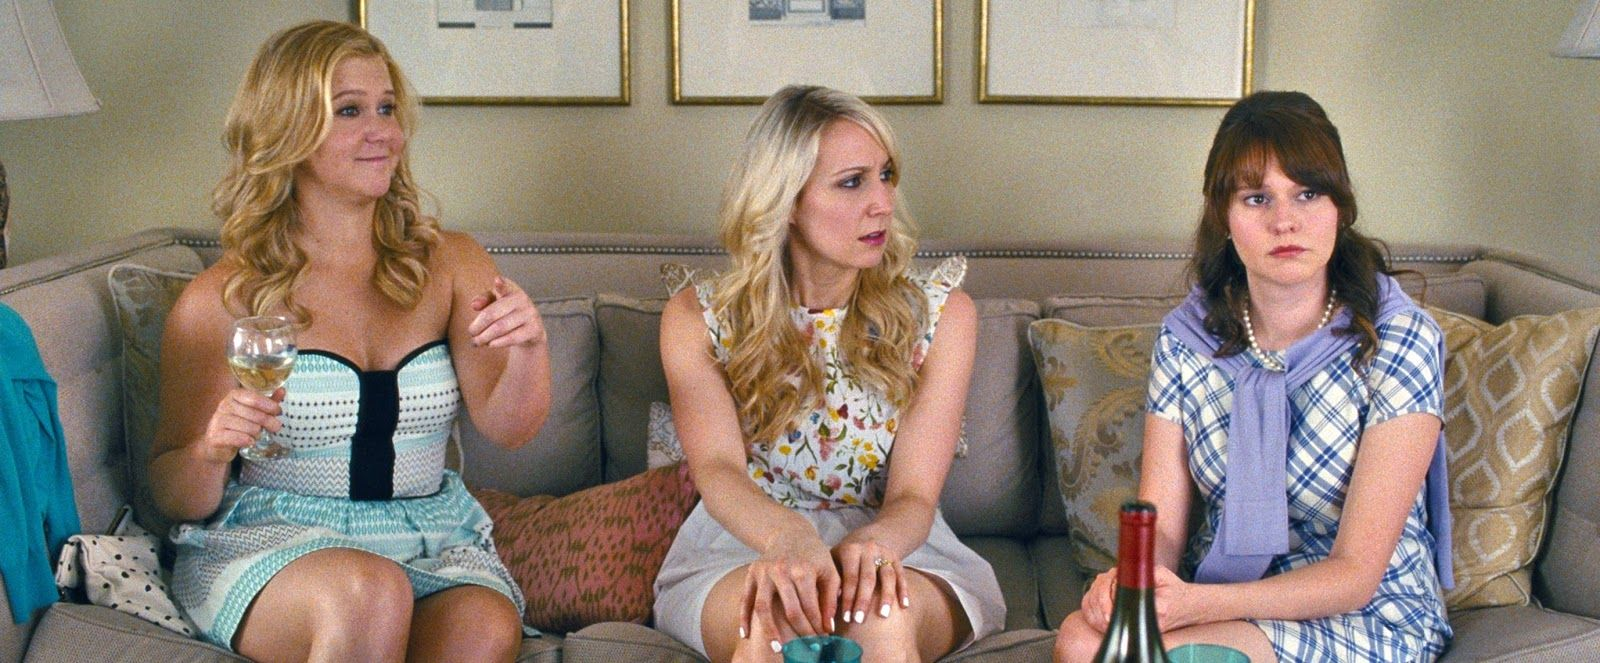 Trainwreck Trailers, 29 Pictures And Poster  Movies  Amy Schumer, Nikki Glaser, Amy Schumer Body-2424